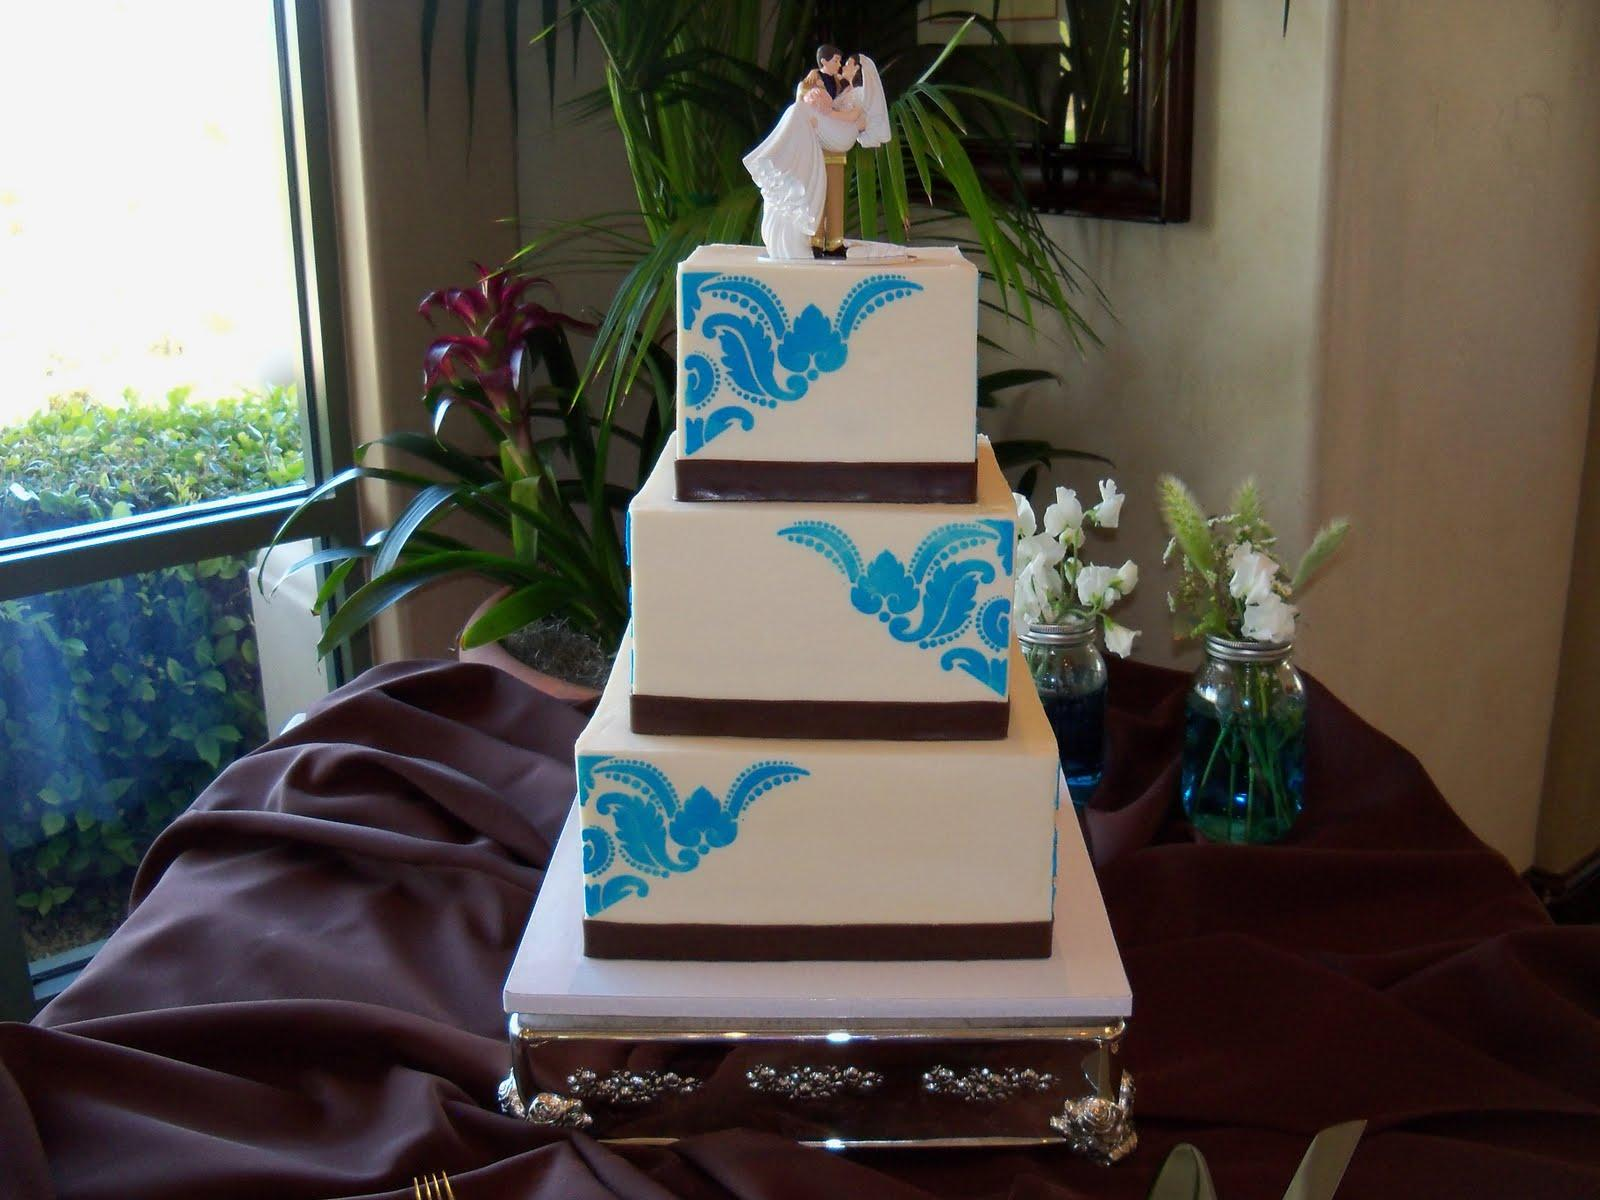 brownbrown combined with brown wedding days Wedding cakes blue and brown